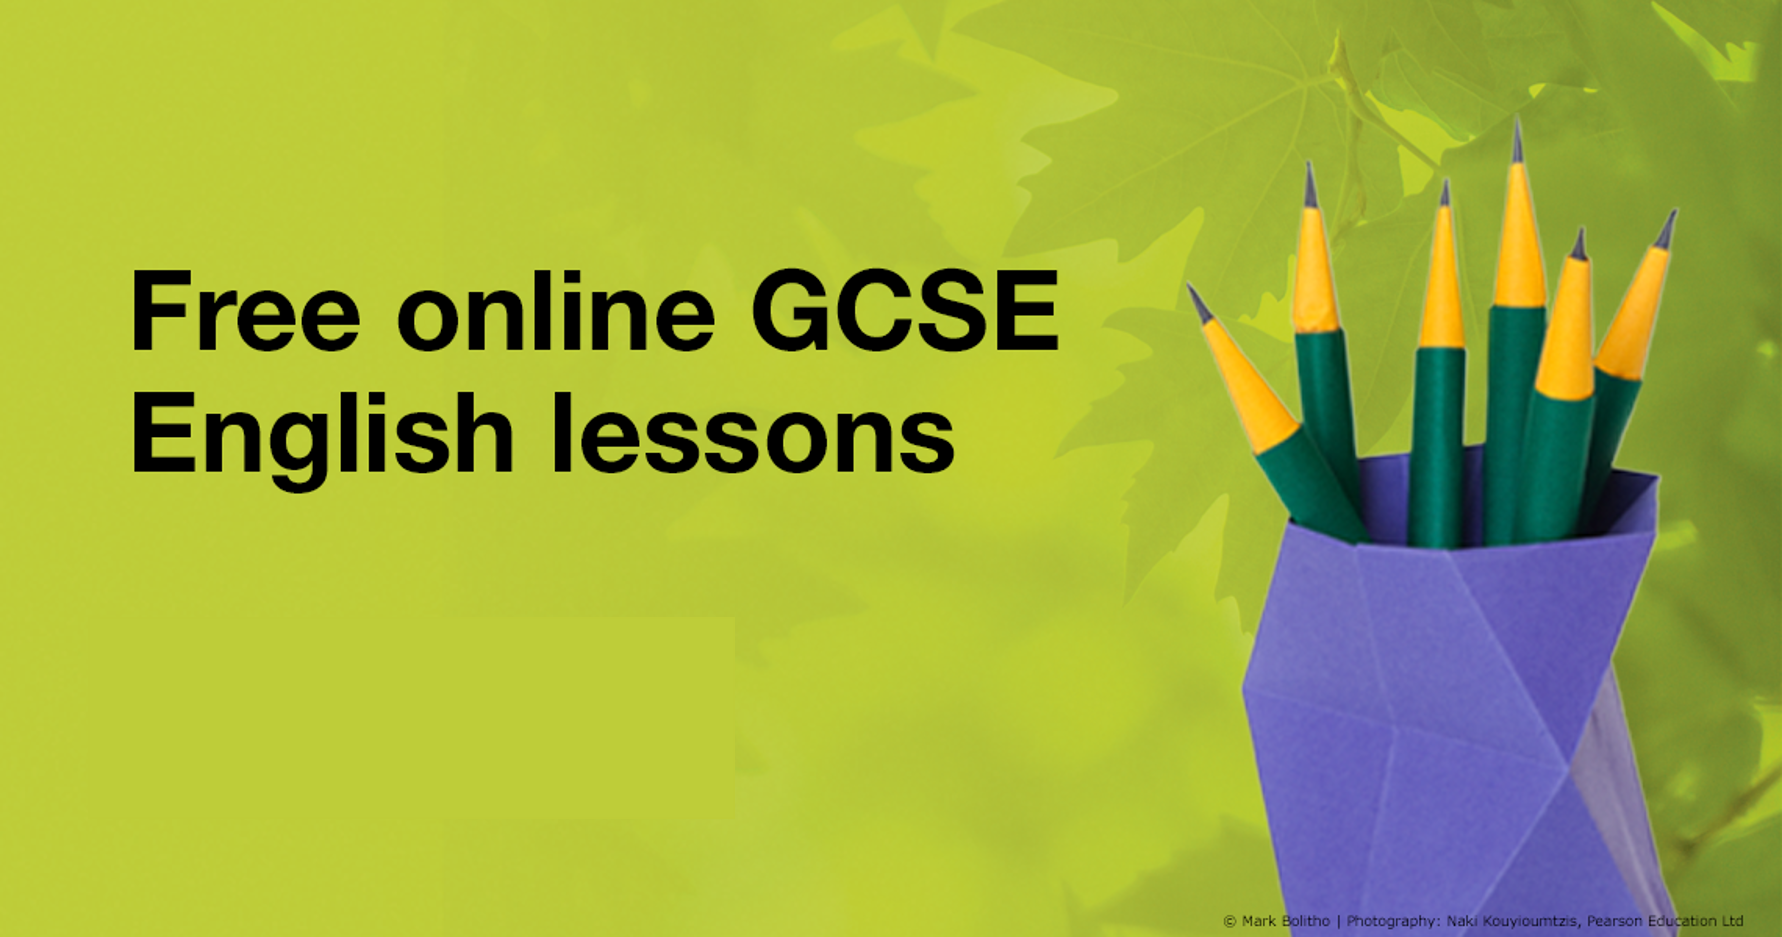 Free online GCSE English lessons